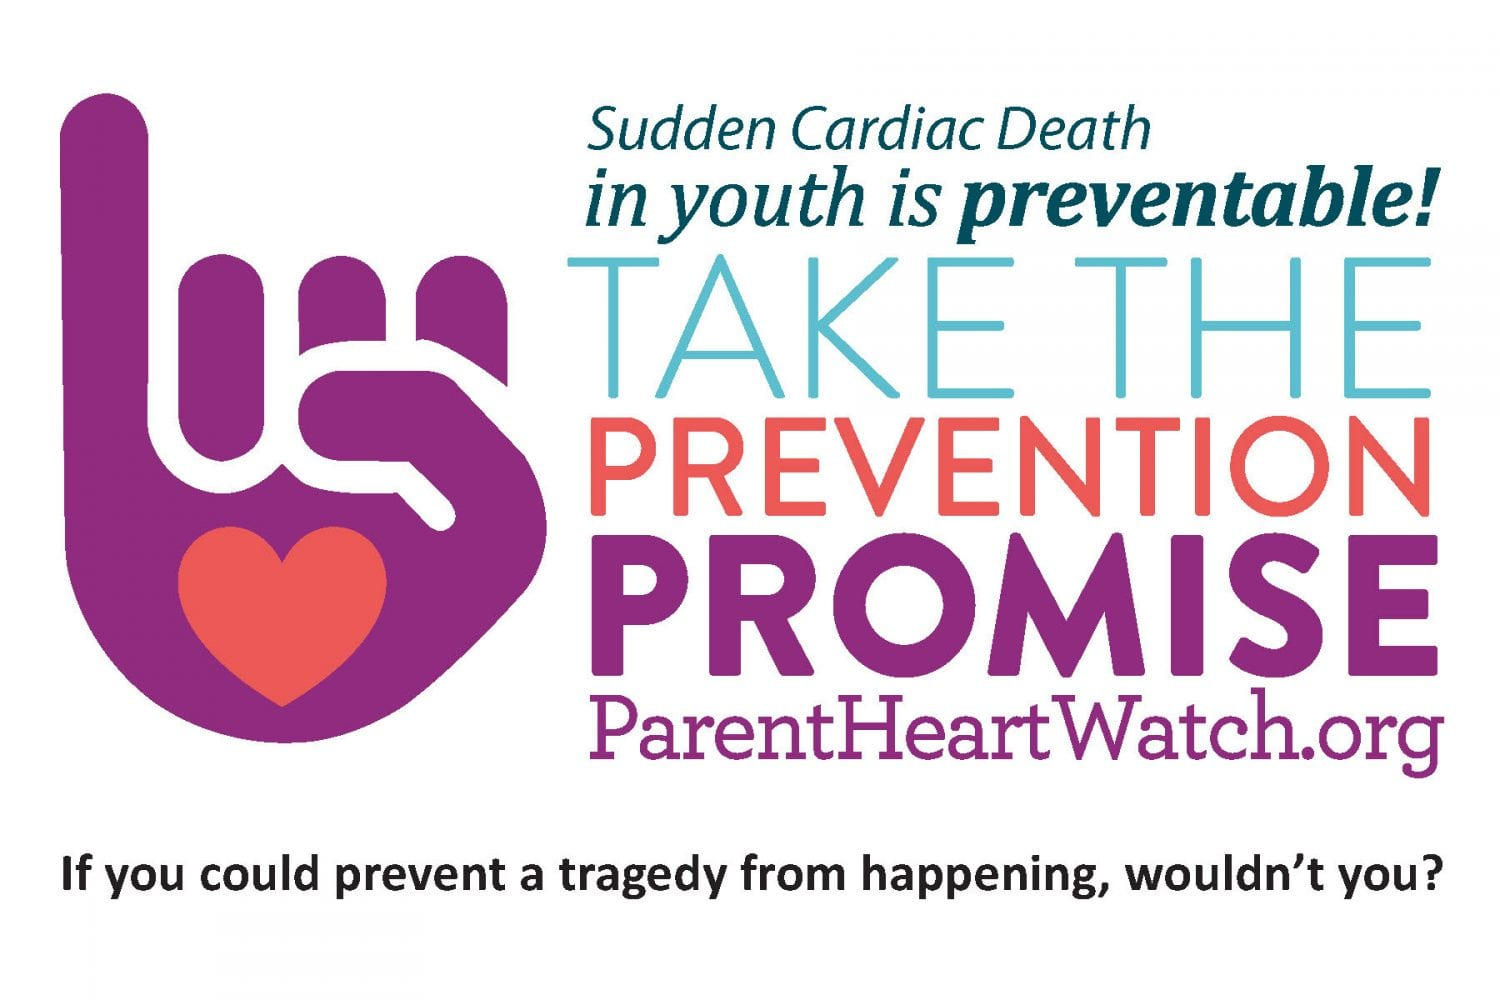 promise - The Prevention Promise